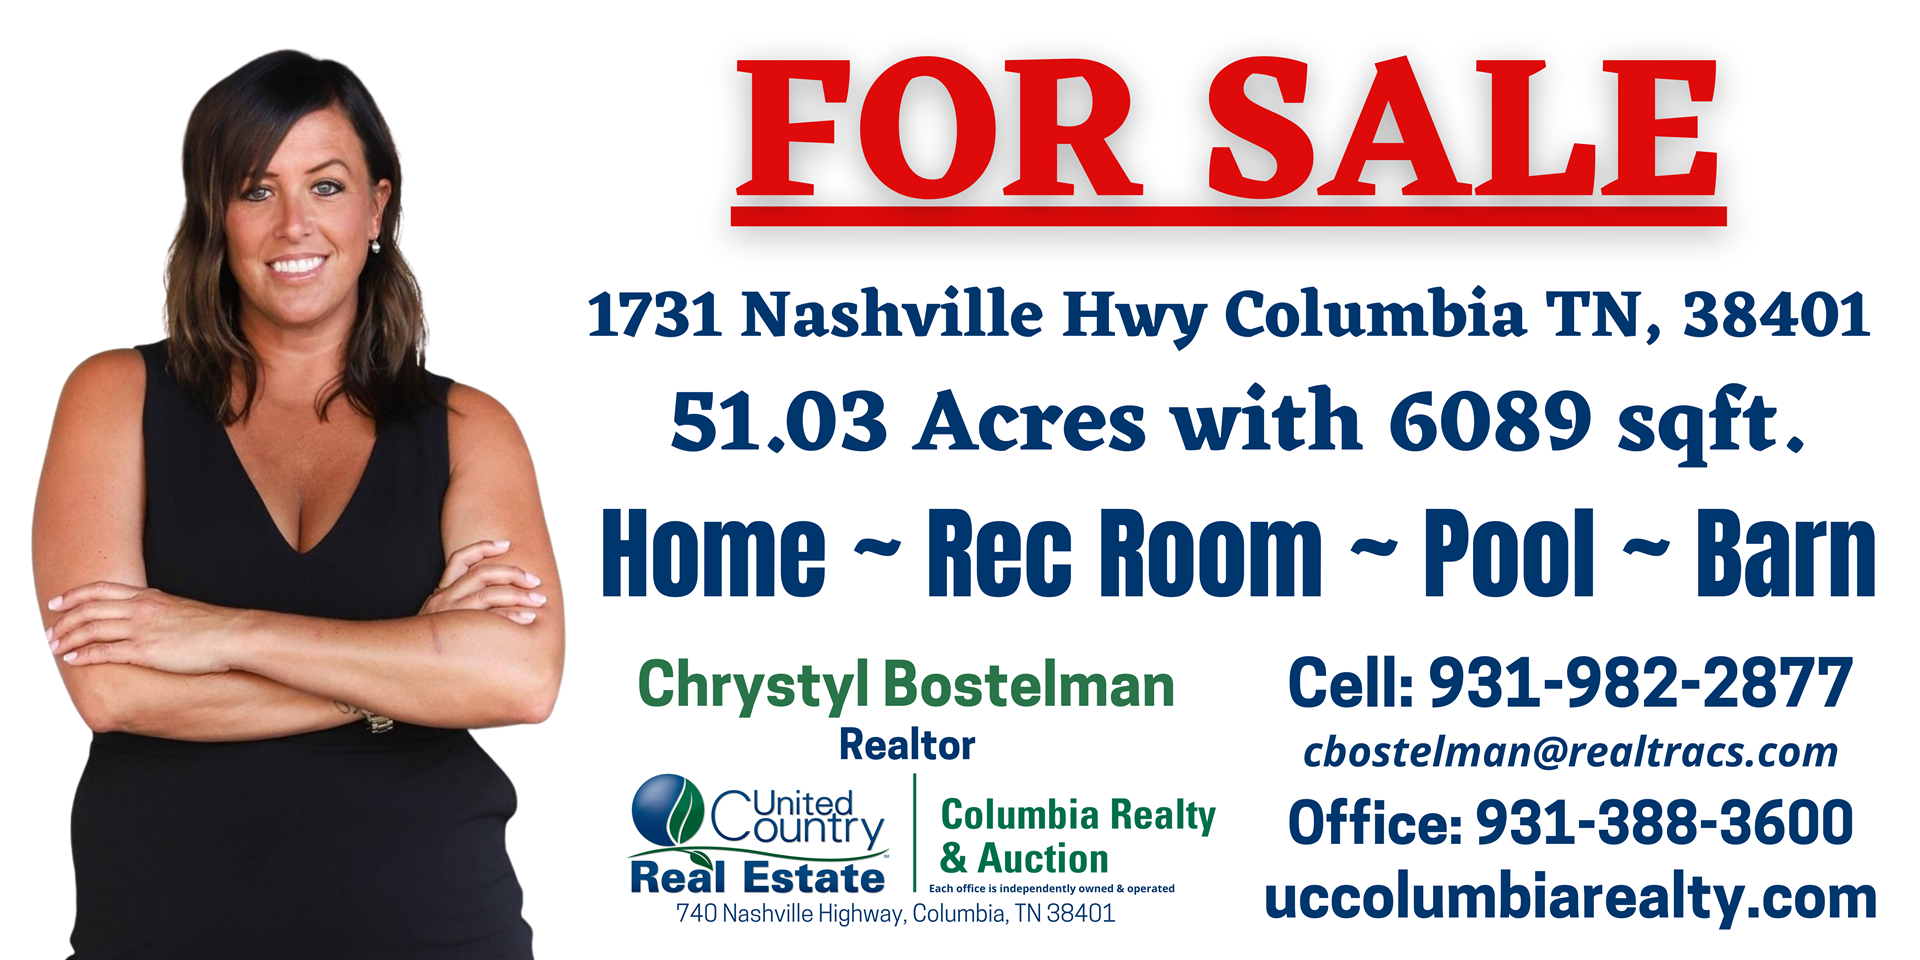 Farm with Acreage for Sale in Columbia, Maury Co. Tennessee